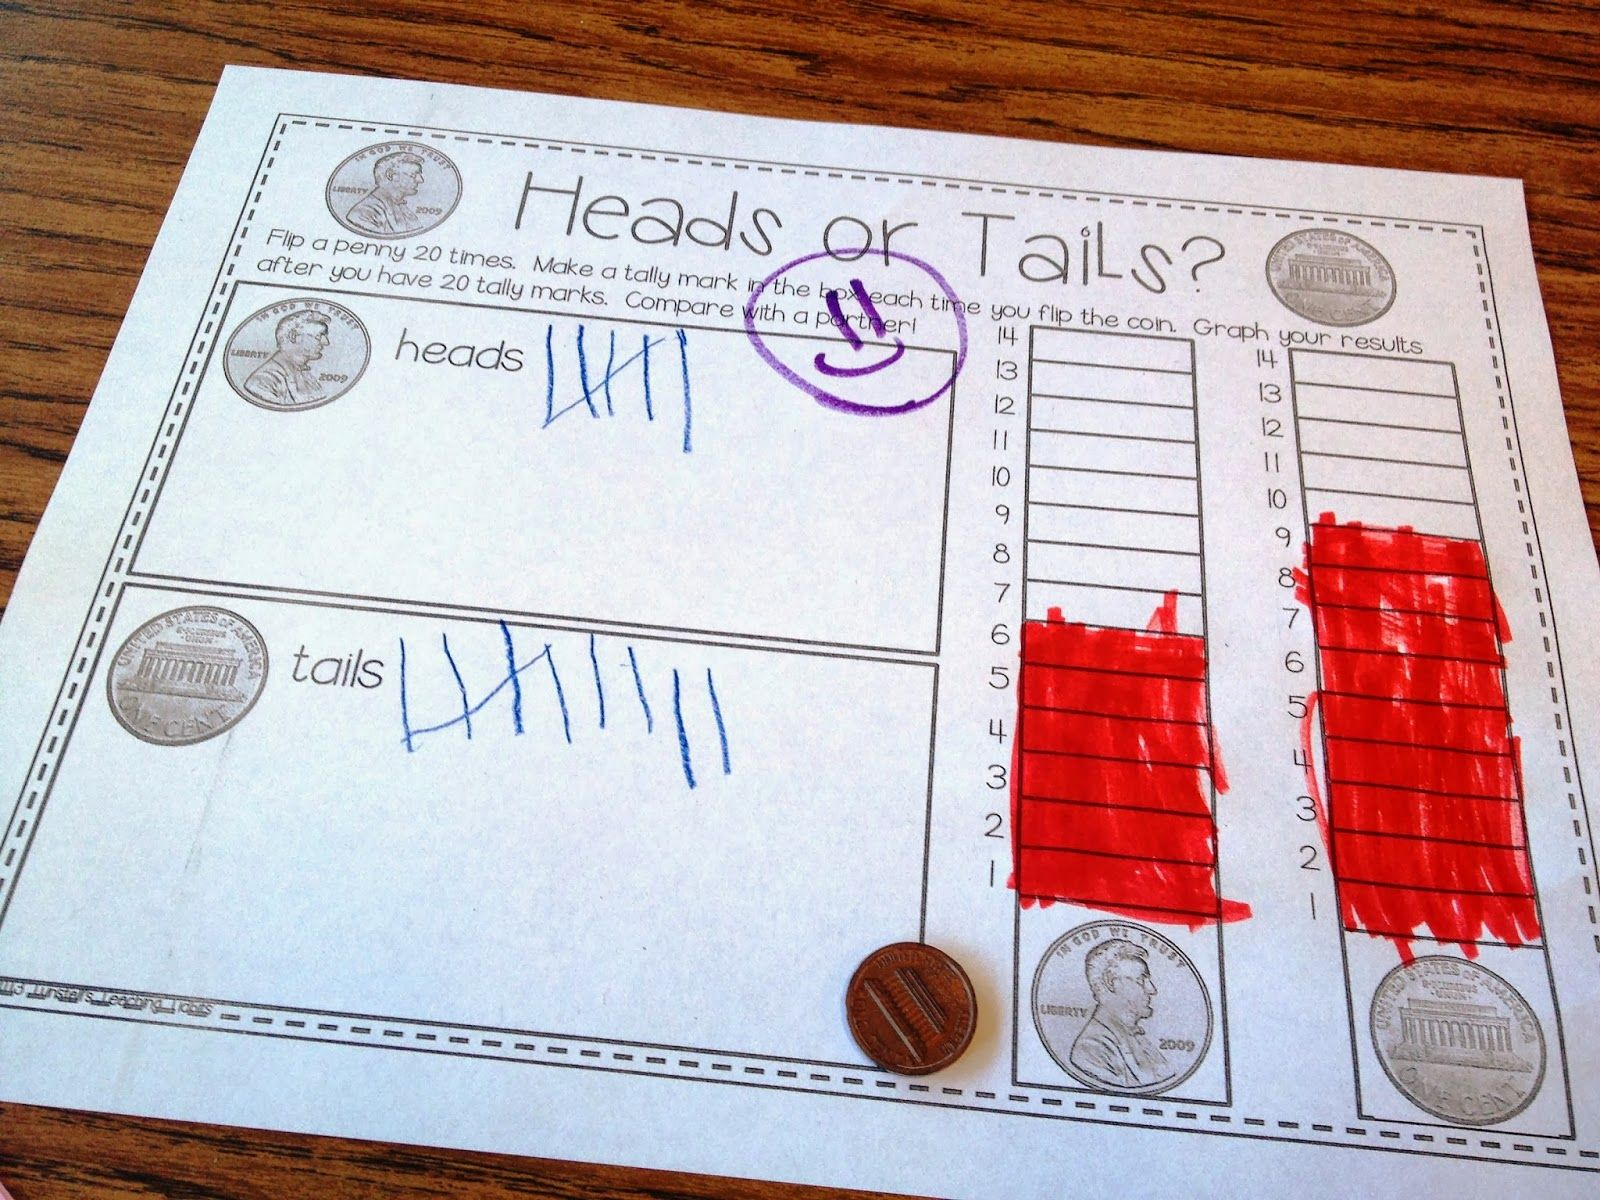 Heads Tails Graph